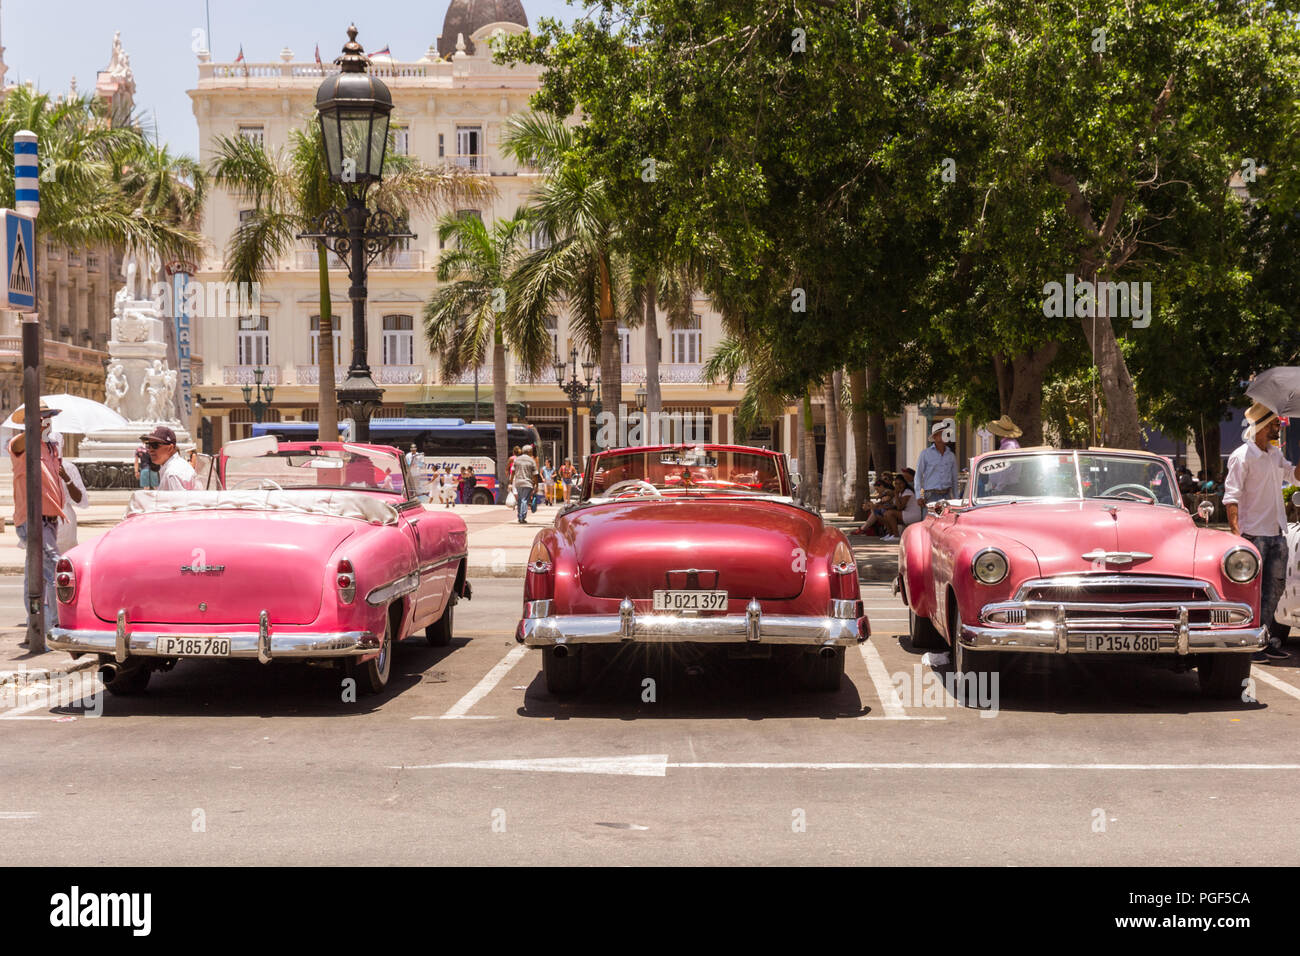 Classic American cars, lined up 1950s vintage automobiles used as taxis, Old Havana, Cuba Stock Photo